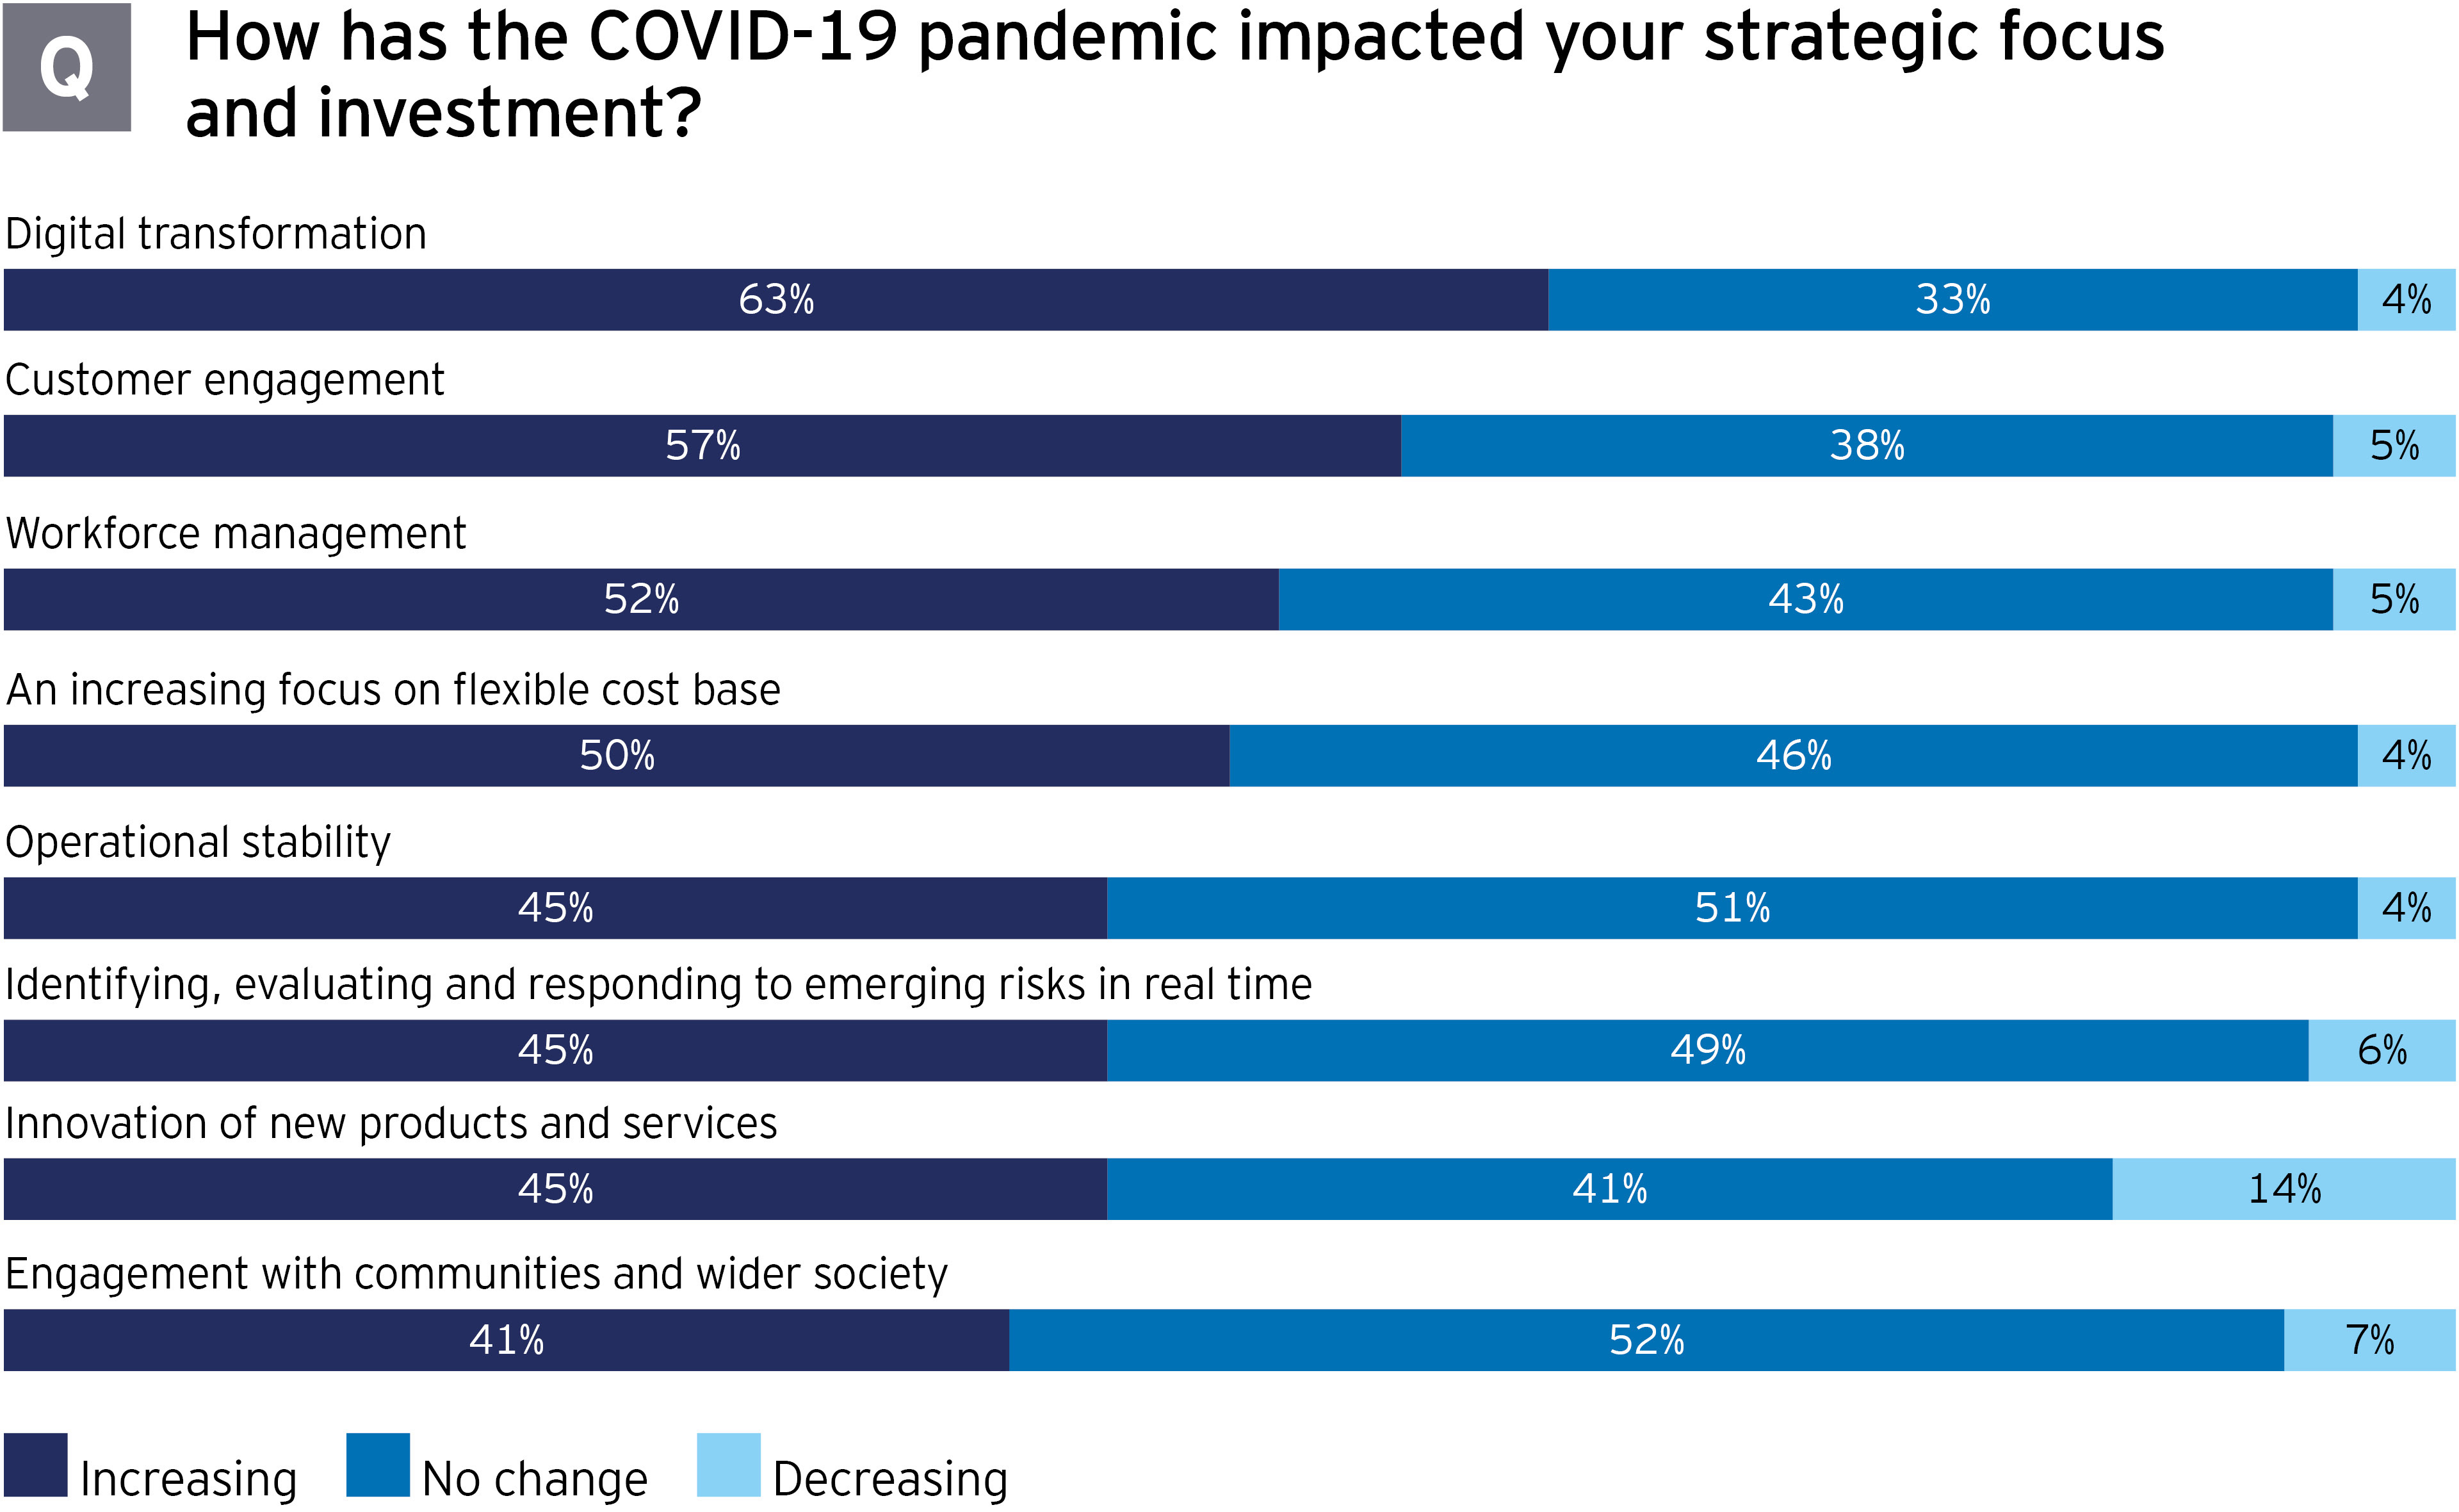 Government and infrastructure pandemic impact on strategic focus and investment